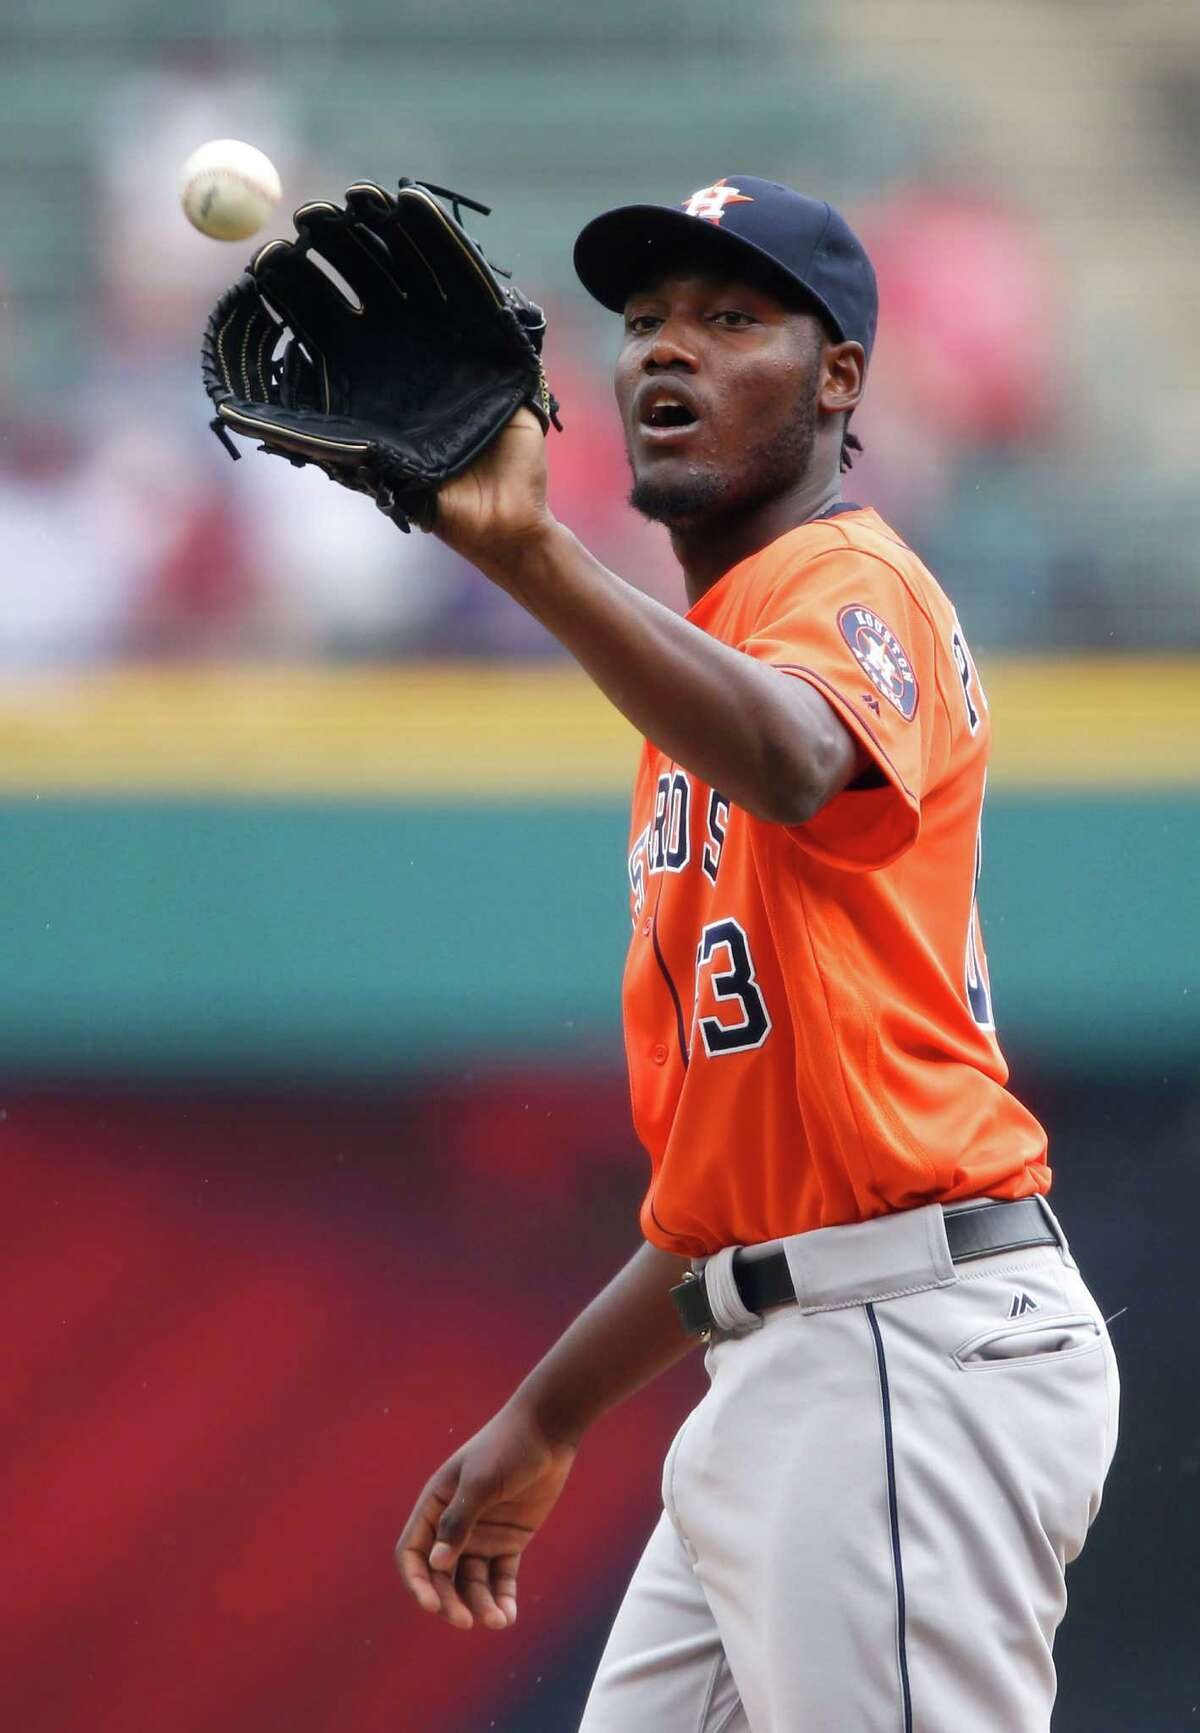 Houston Astros starting pitcher David Paulino against the Cleveland Indians during the first inning of a baseball game Thursday, Sept. 8, 2016, in Cleveland. (AP Photo/Ron Schwane)